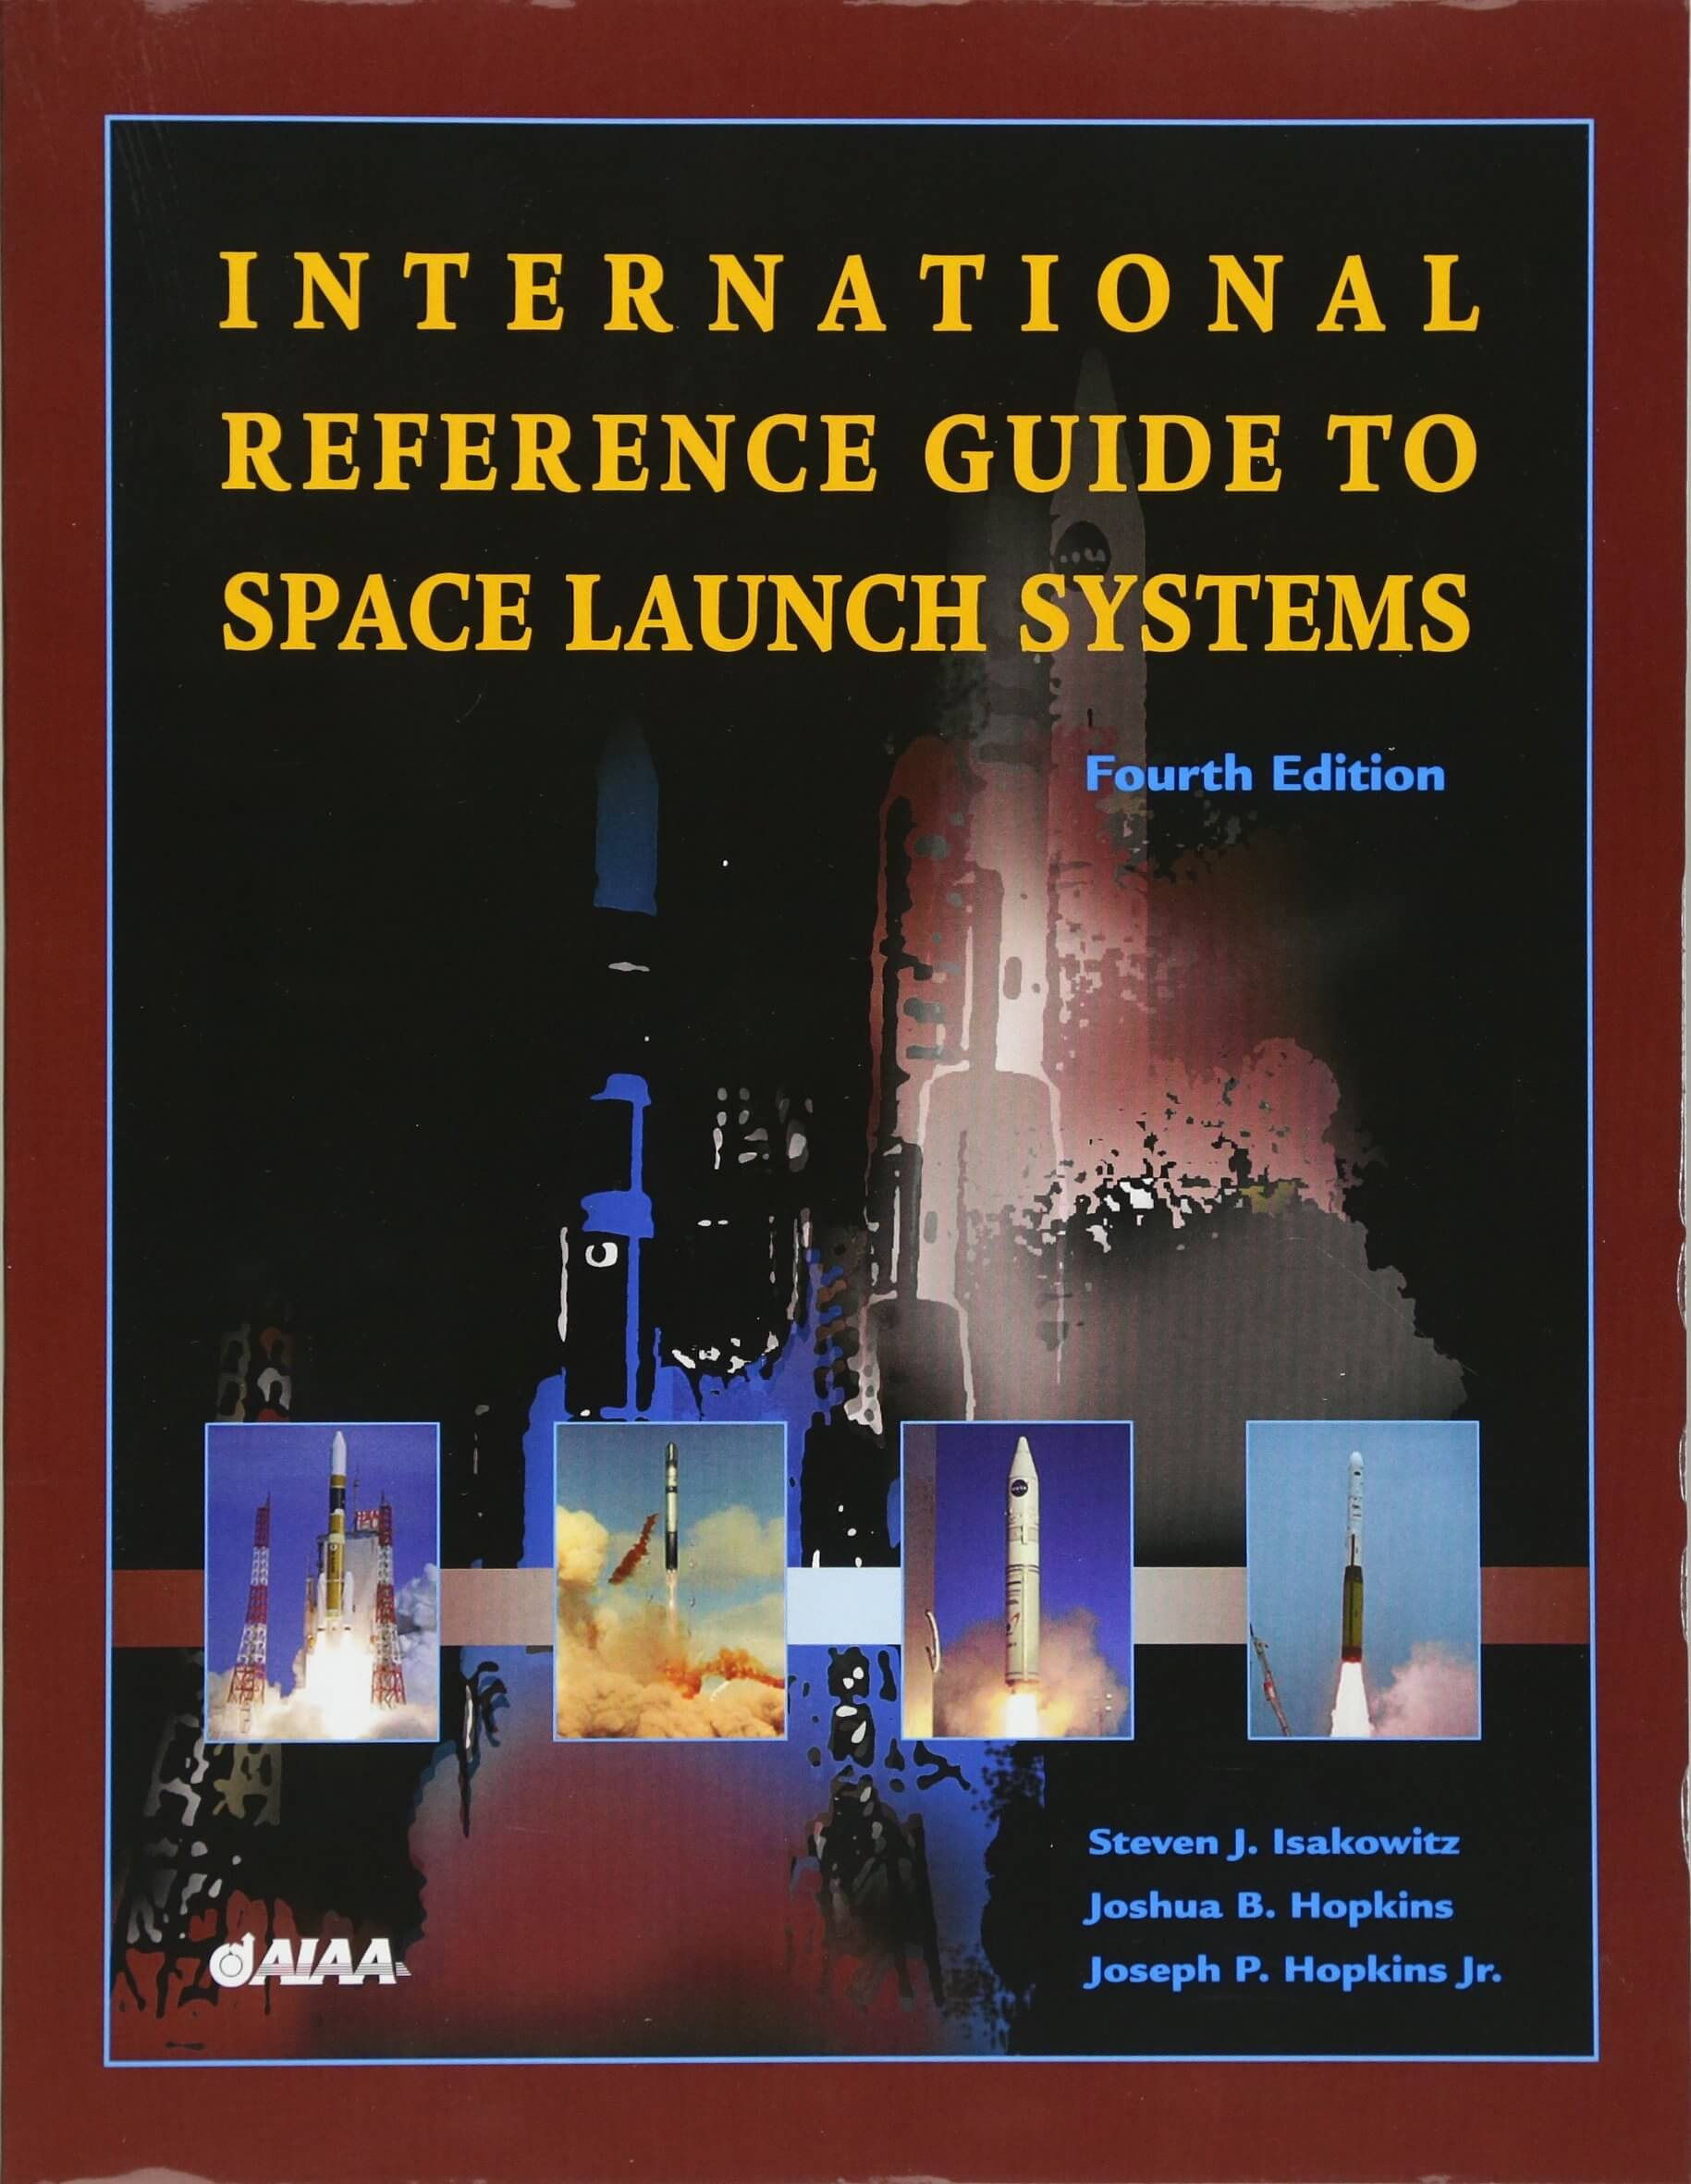 Book: International Reference Guide to Space Launch Systems by Steven J. Isakowitz